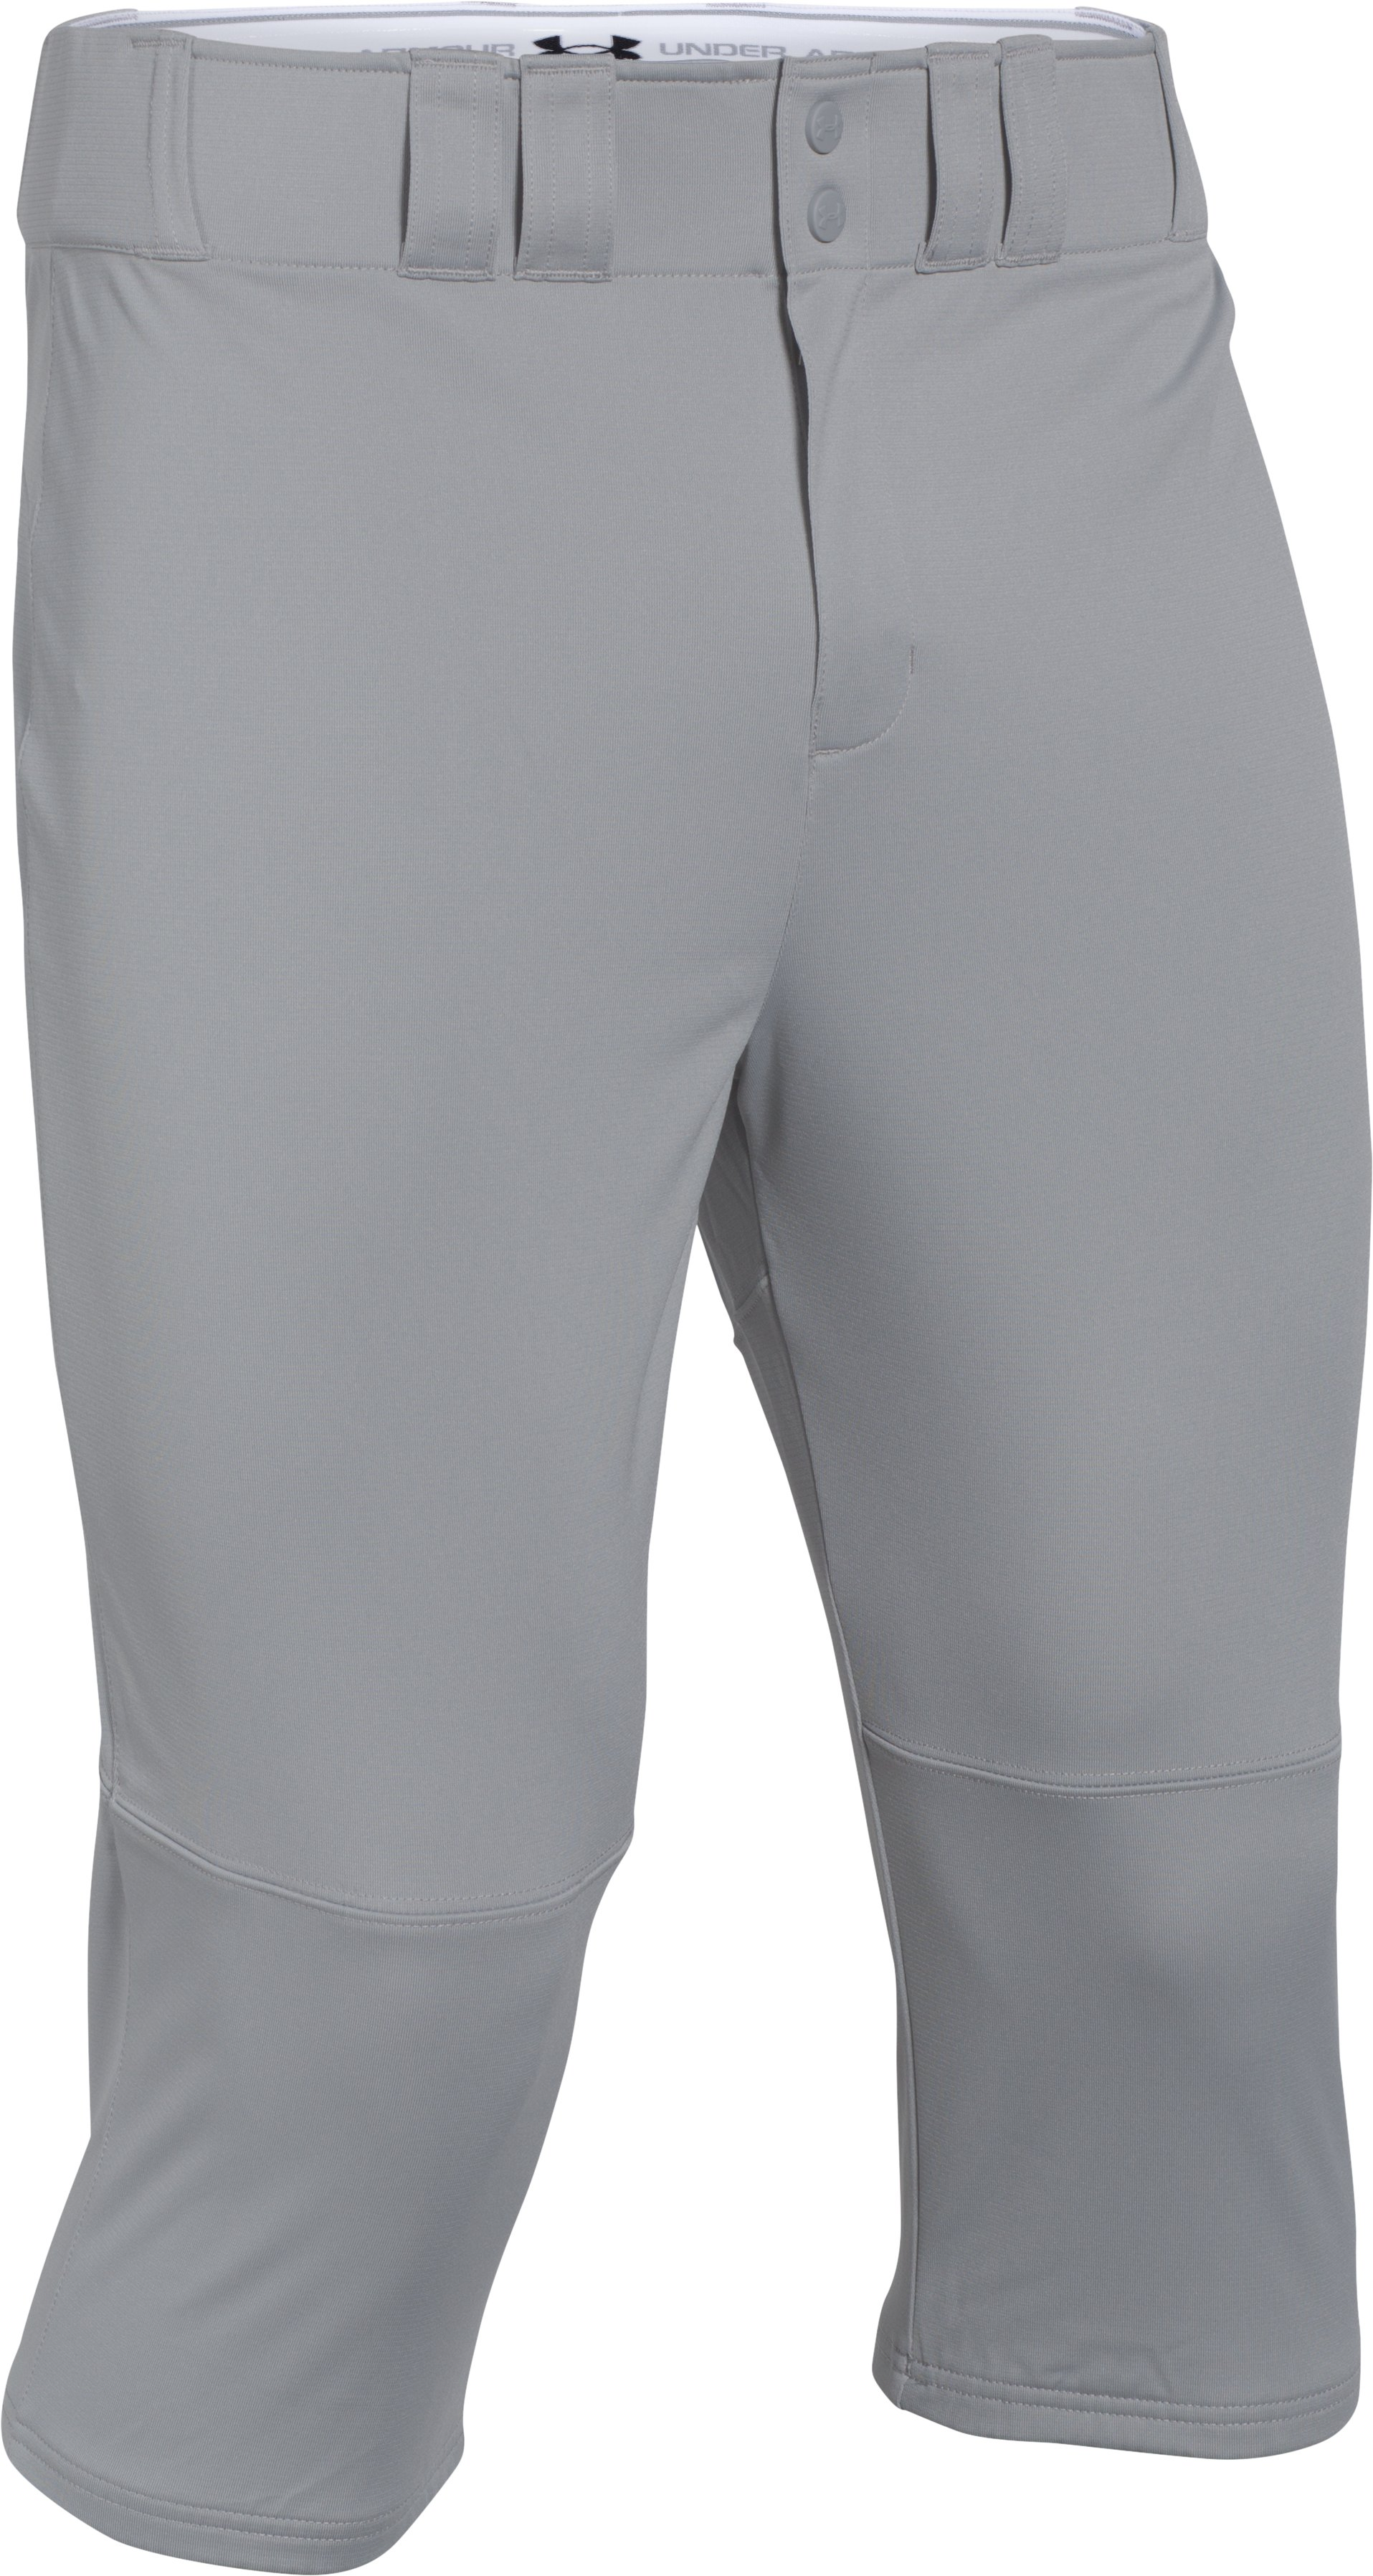 Men's UA Leadoff Baseball Knicker Pants, Baseball Gray